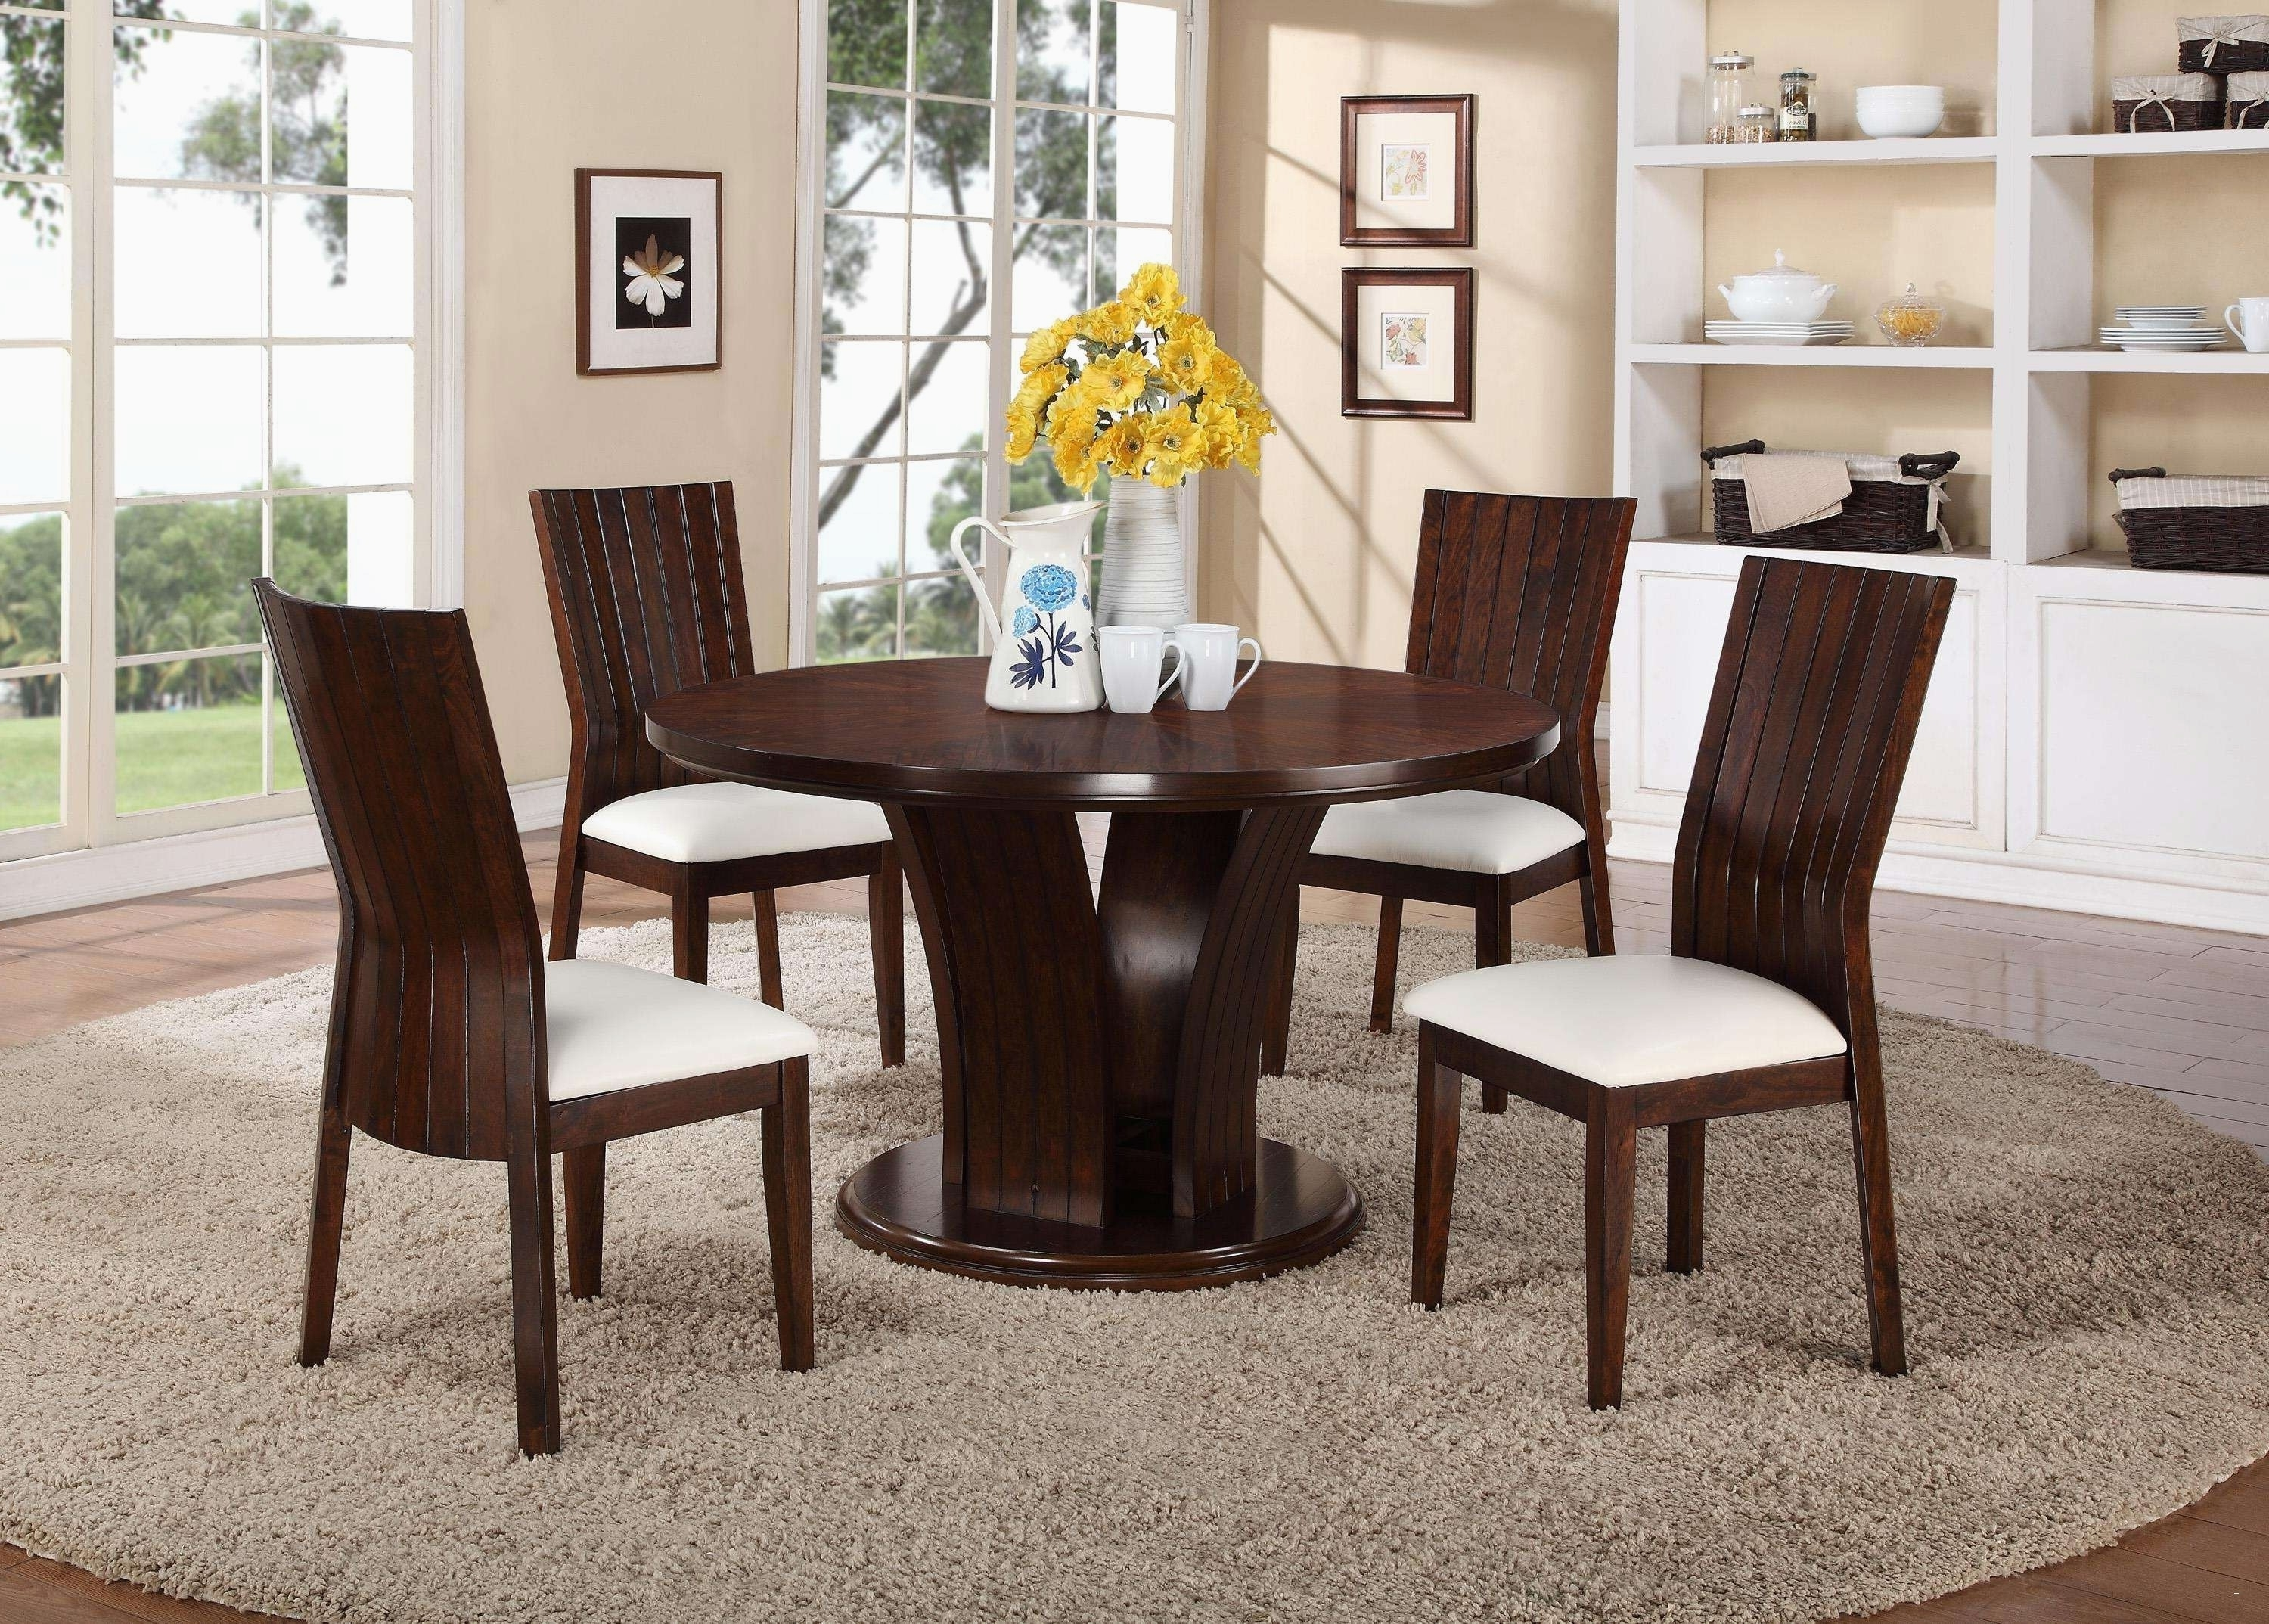 6 Seat Round Dining Tables With Most Popular Round Dining Tables For 8 Inspirational 6 Seat Round Dining Table (Gallery 10 of 25)